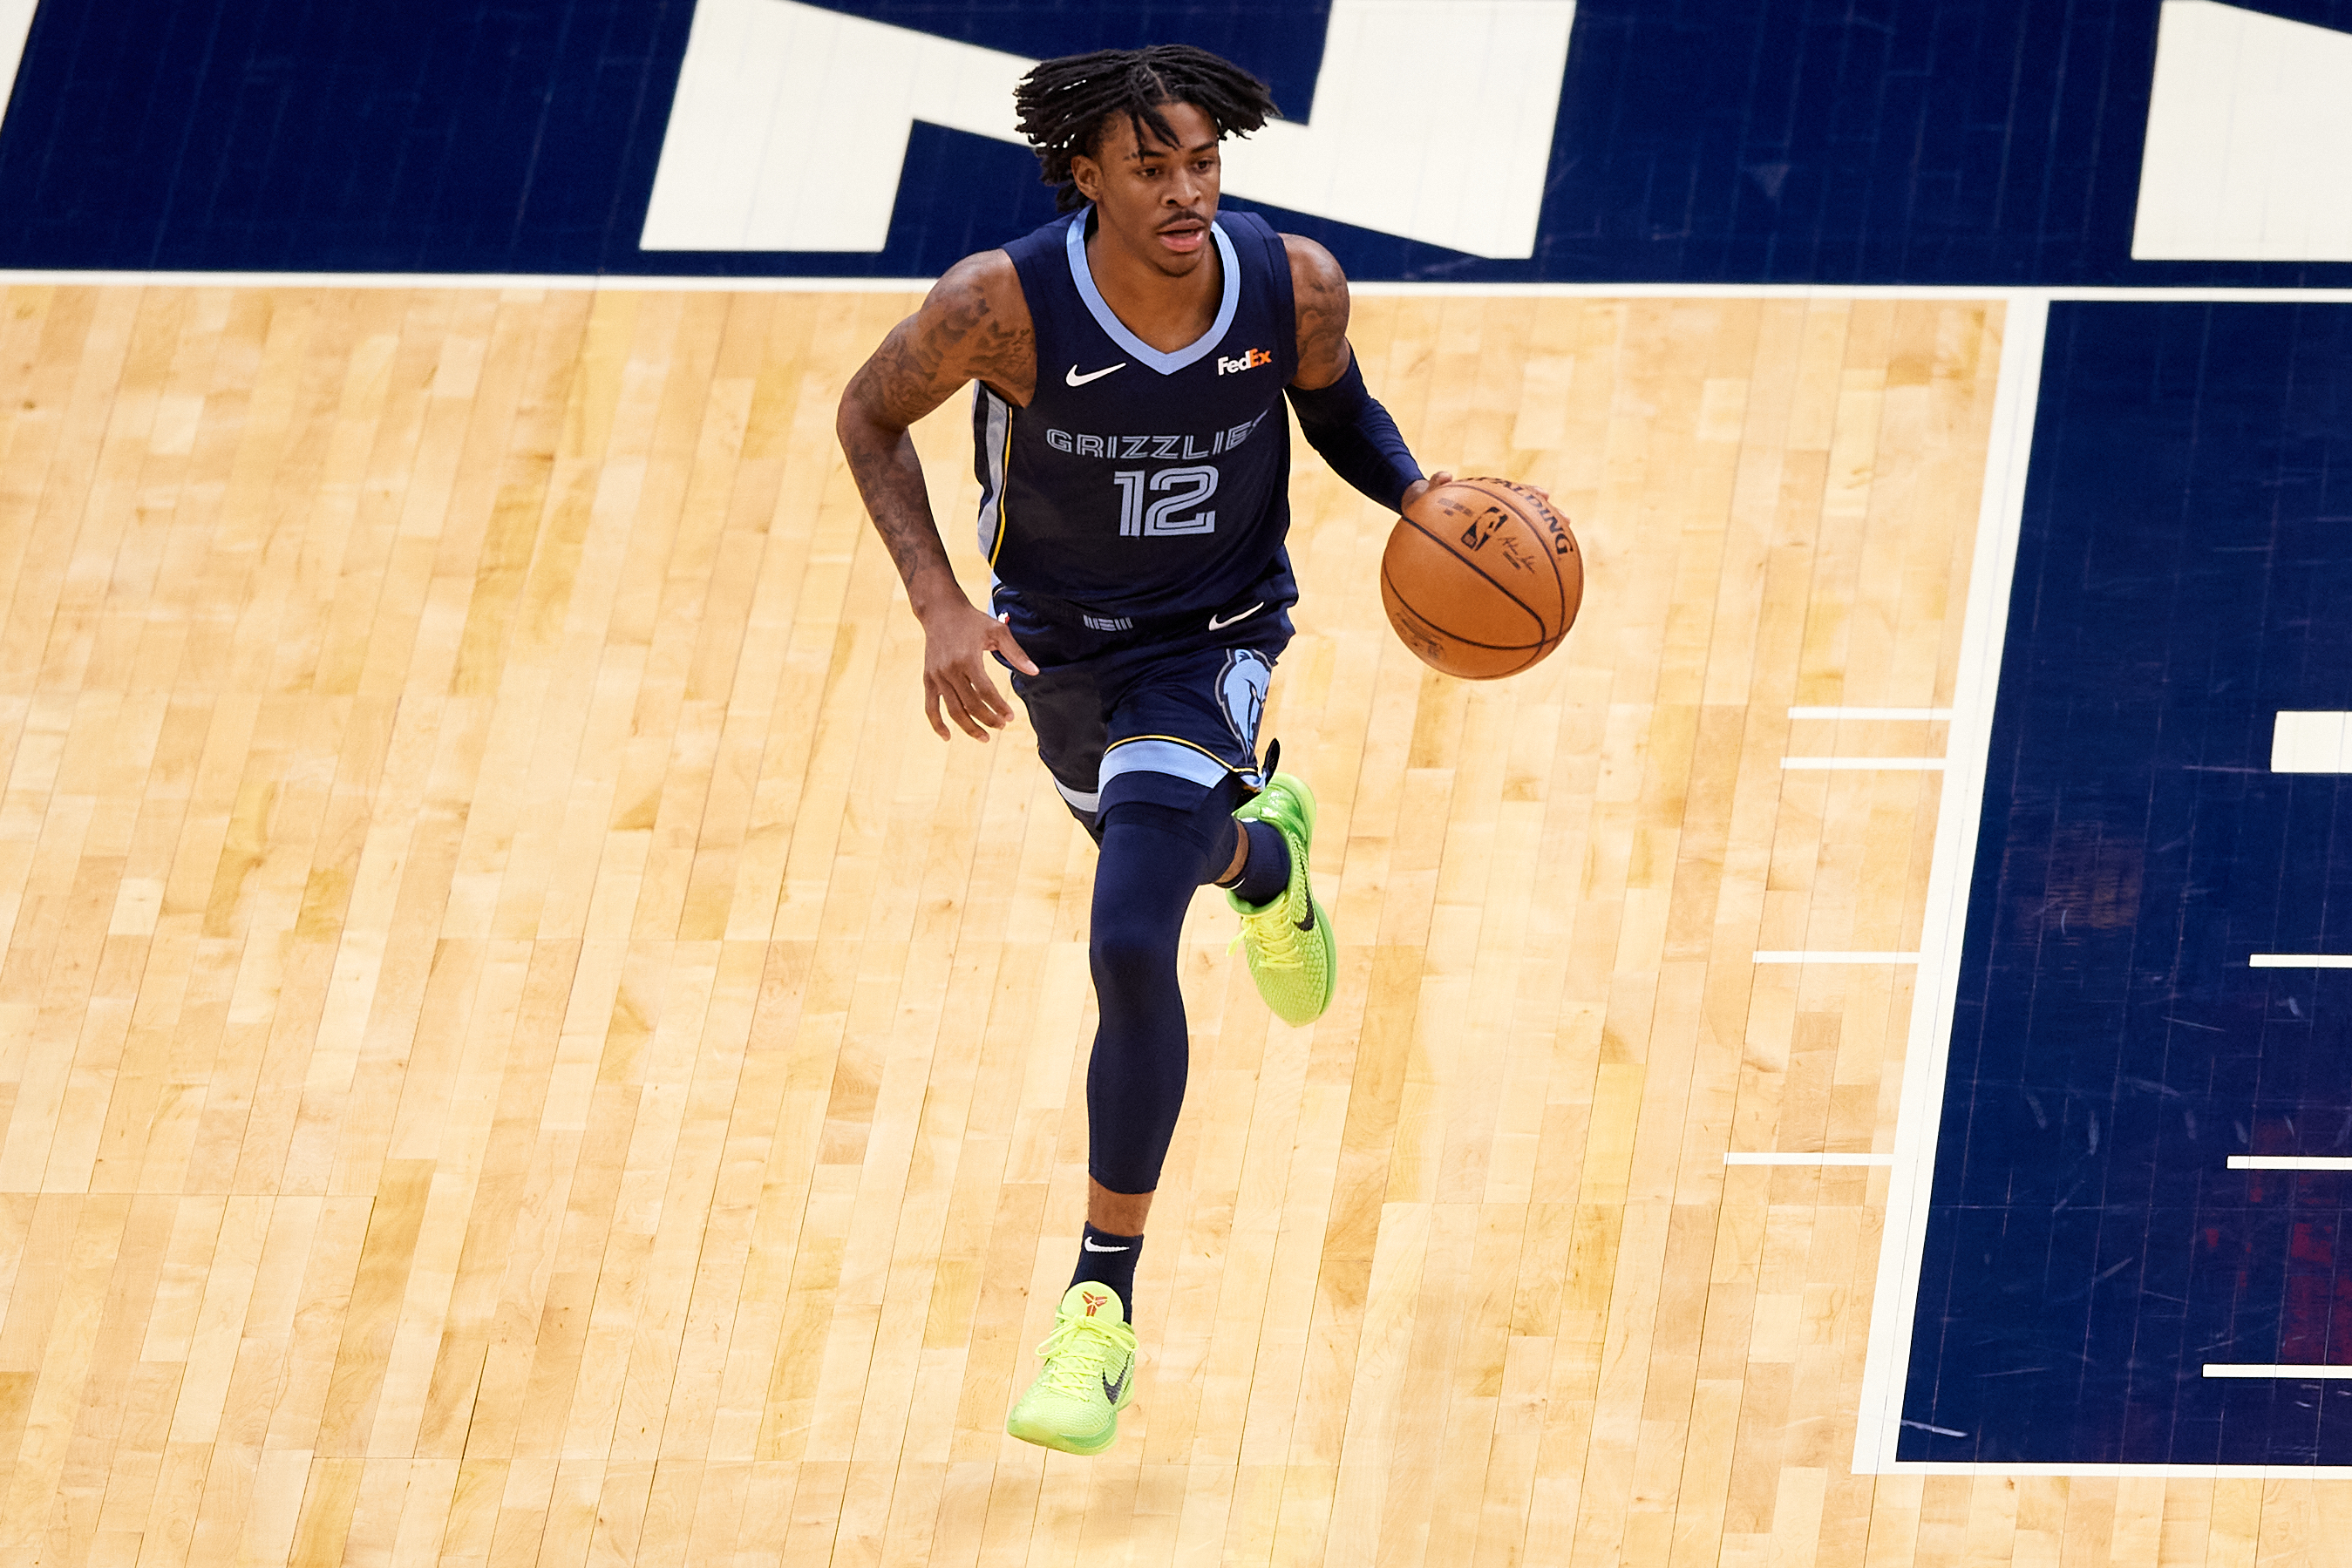 Memphis Grizzlies point guard Ja Morant won NBA Rookie of the Year last season. Both sides have an idea on how Morant can dominate again this year.